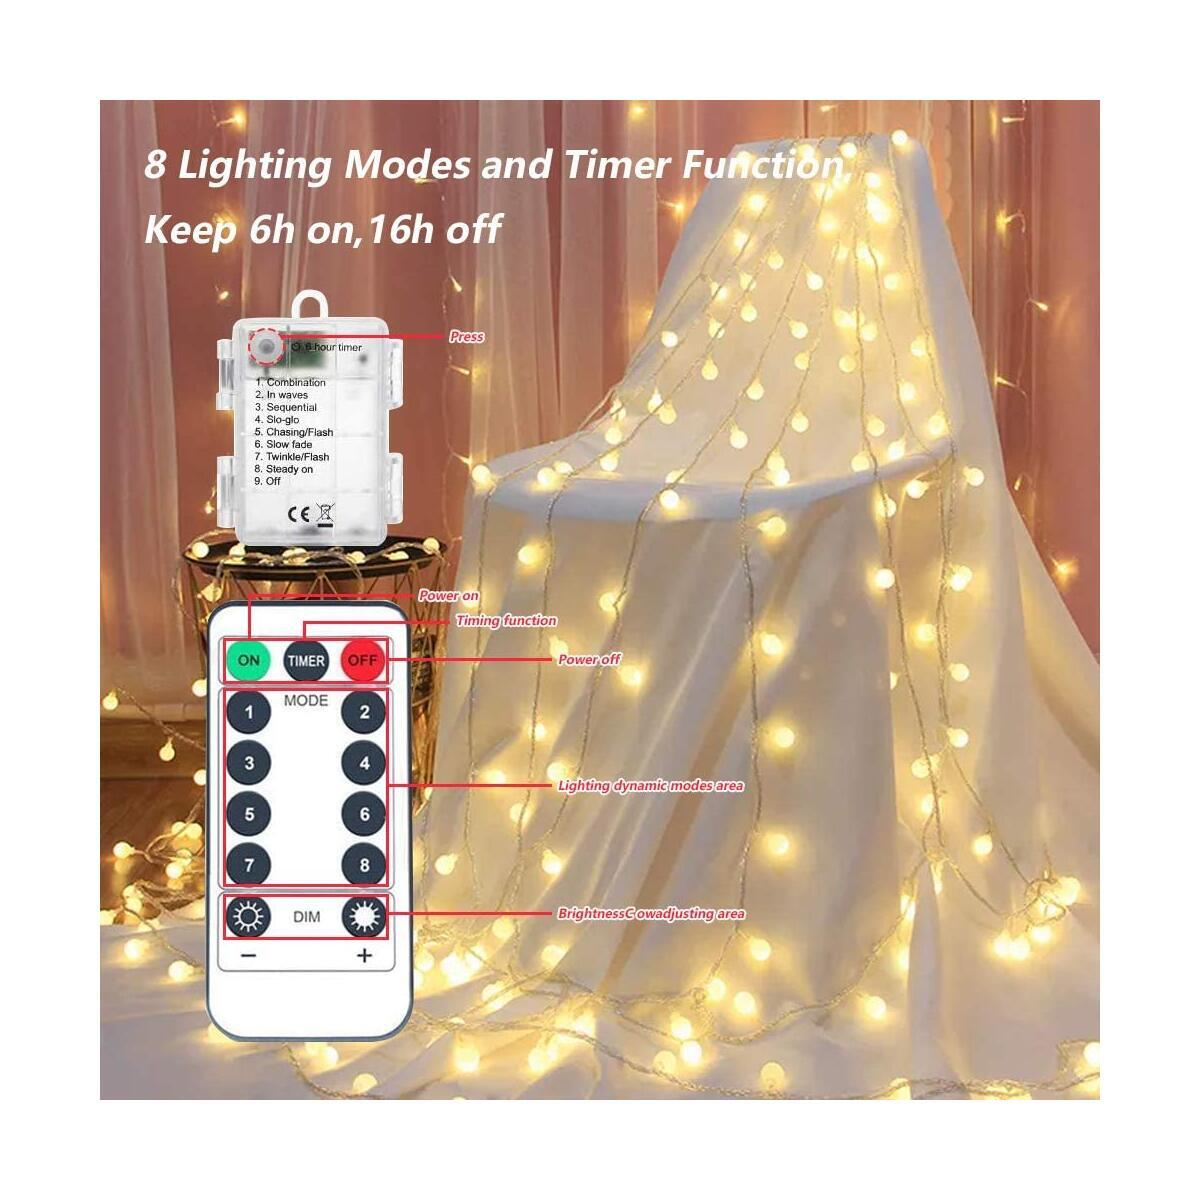 Battery Operated String Lights, Correare 2 Pack 50 LED 19.6Ft Globe Outdoor String Lights with 8 Lighting Modes and Remote for Bedroom, Patio, Party, Wedding, Christmas Holiday Decoration Lights